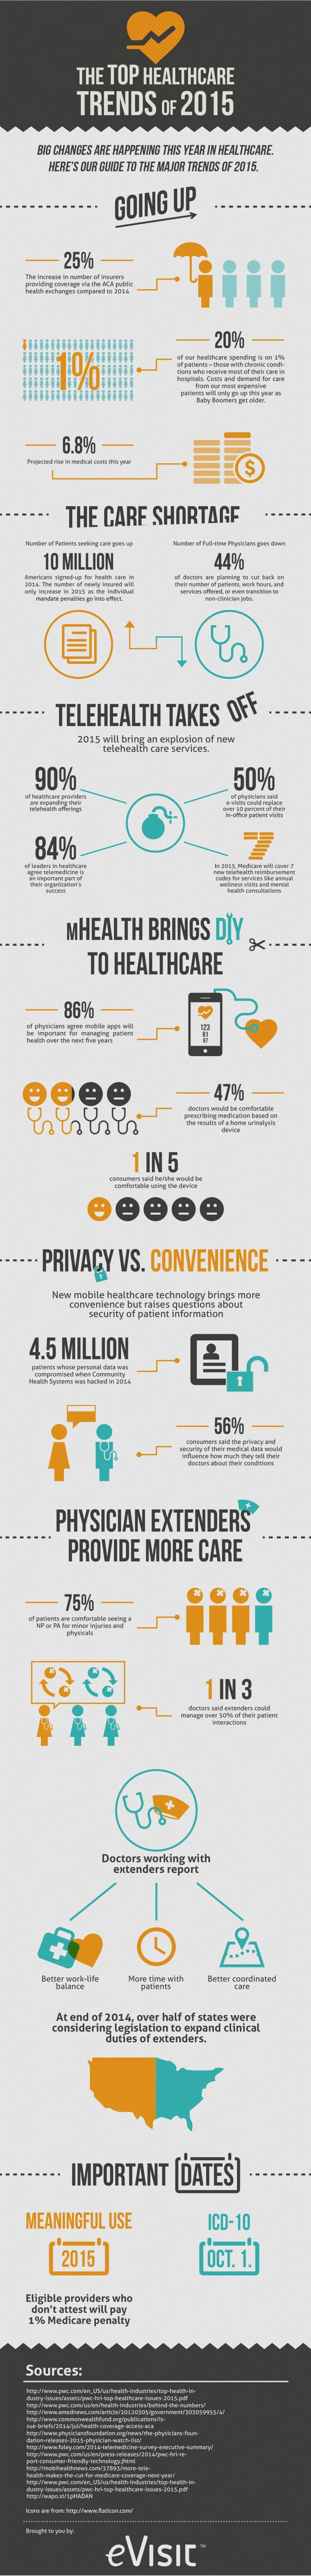 Infographic: Top Healthcare Trends of 2015  www.mpaagroup.com #informatics #HealthcareTrends